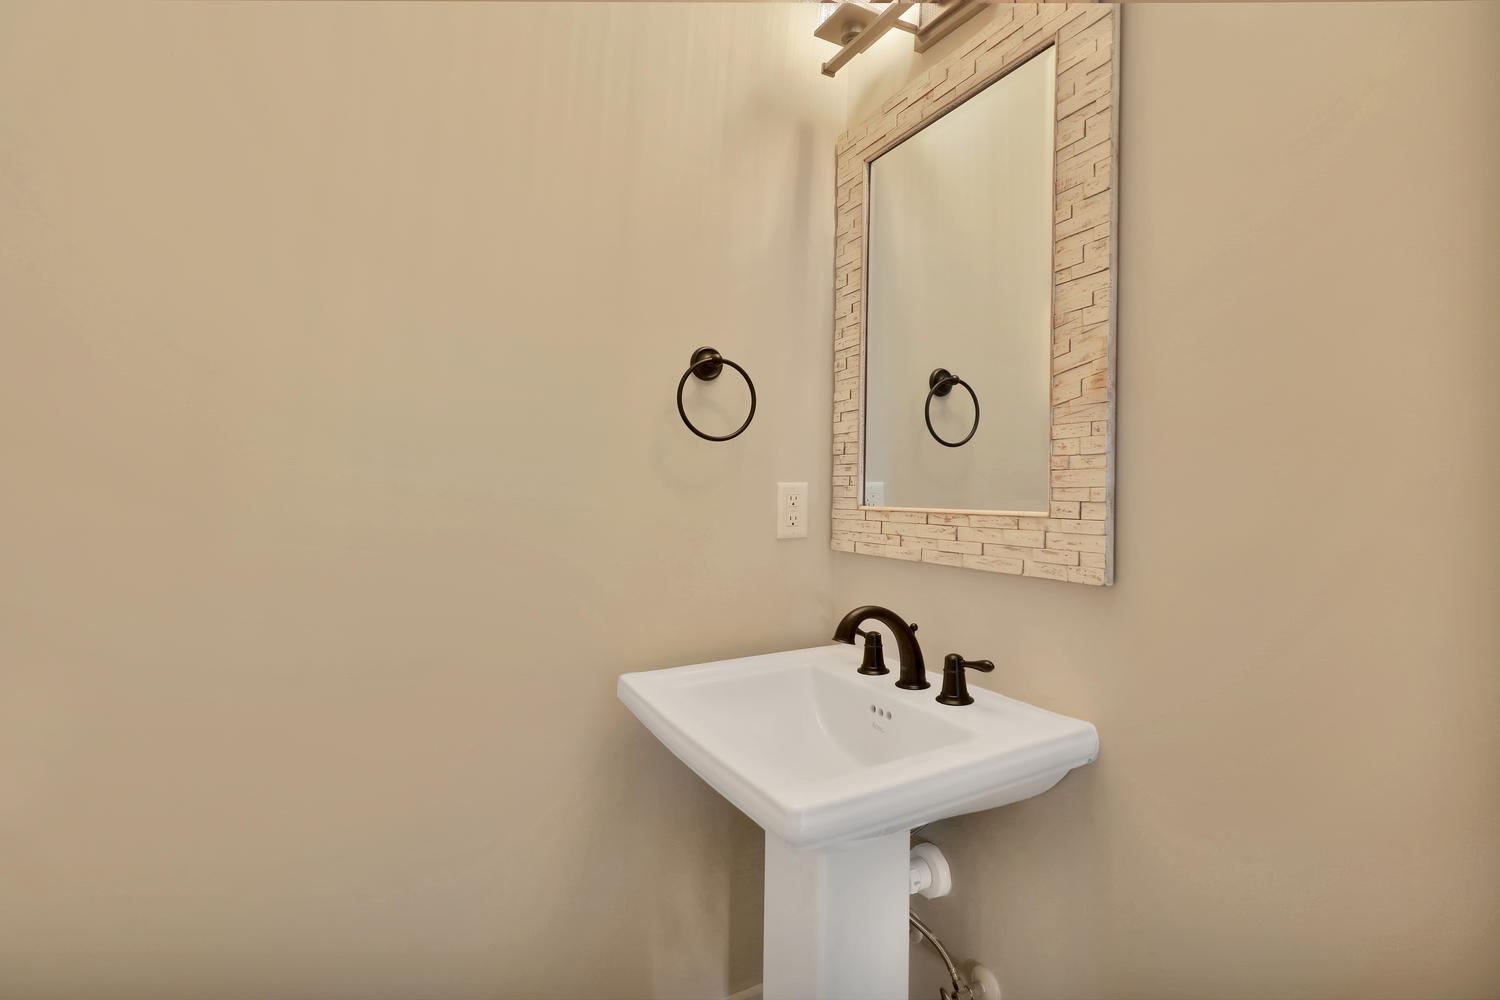 rock-cress-dr-moseley-va-23120-large-039-33-bathroom-1500x1000-72dpi